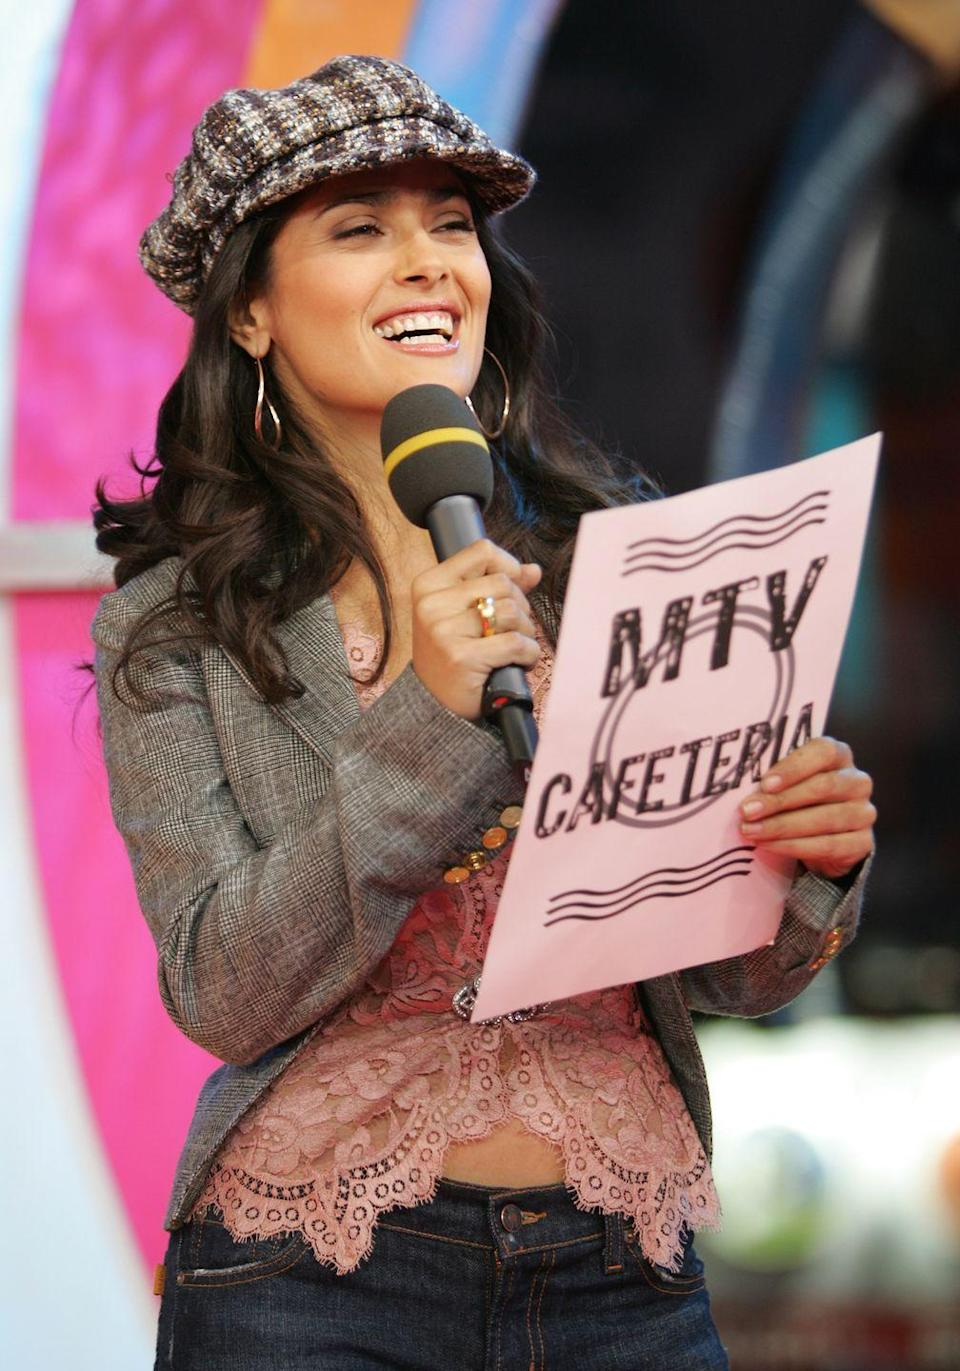 <p>Not sure what MTV Cafeteria is, but only award-winning actress Salma Hayek could convince me to eat there.</p>